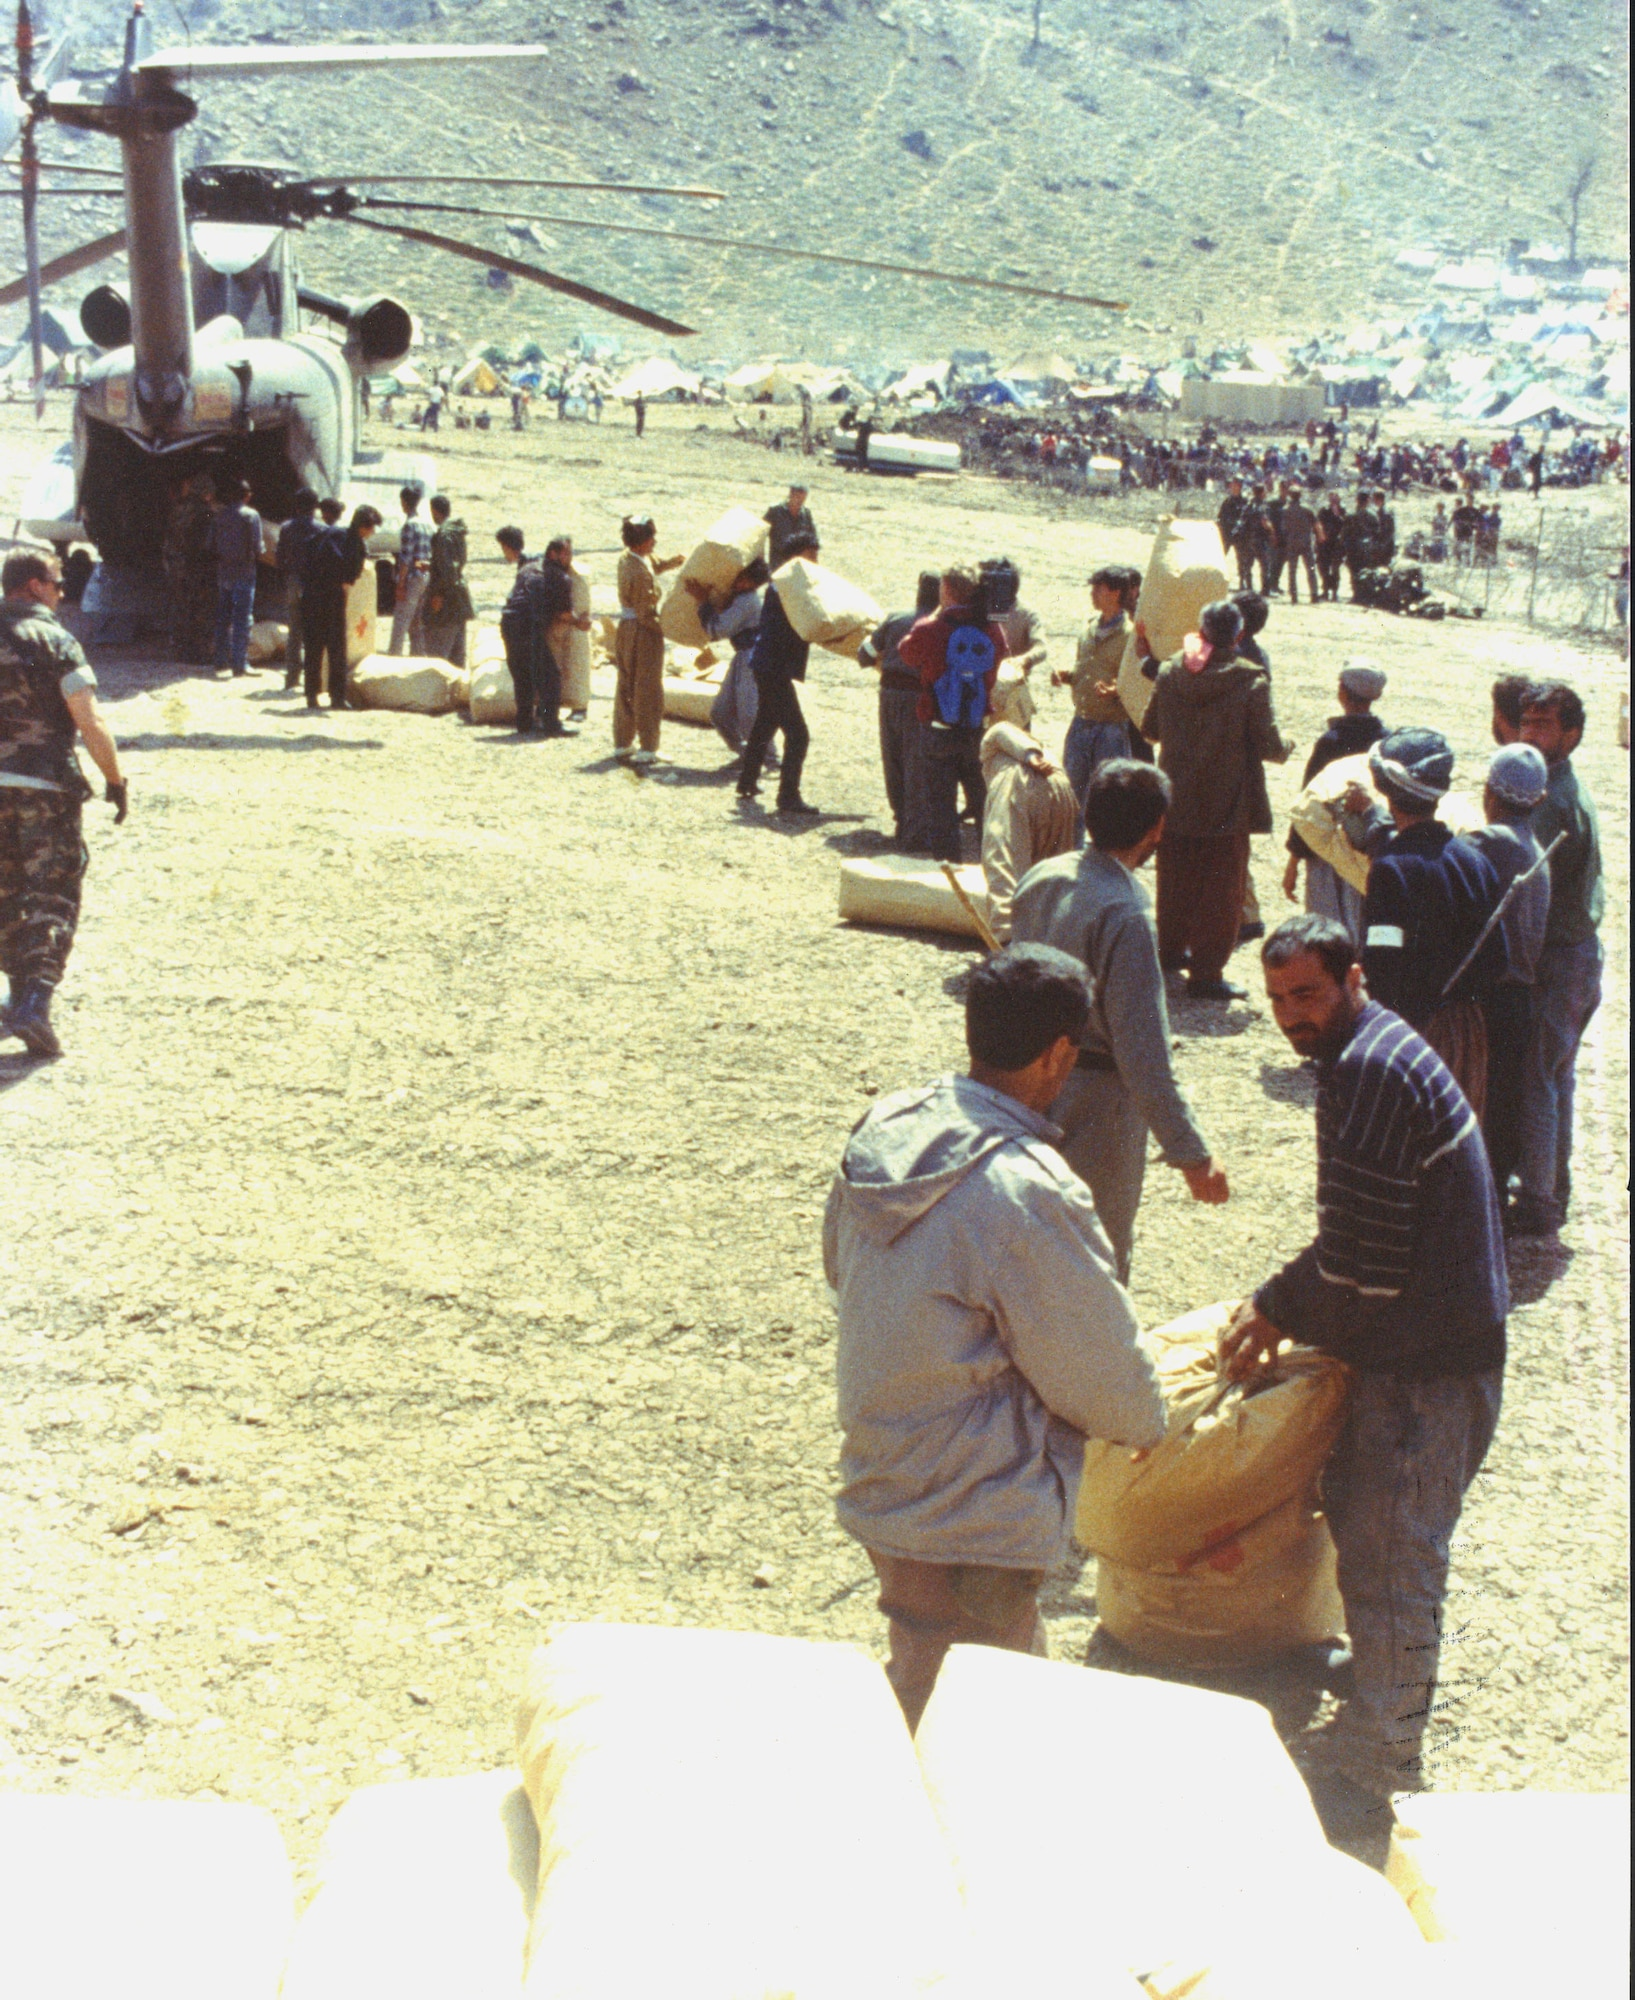 Following the Gulf War, coalition forces provided humanitarian aid to Kurds on the Iraqi/Turkish border in 1991 during Operation Provide Comfort. In addition, Air Force Special Operations Command aircraft stood alert for personnel recovery and various other missions in support of Operation Southern Watch. During July 1992, AFSOC units began participation in Operations Provide Promise and Deny Flight, the humanitarian relief effort and no fly zone security in the Balkans. (courtesy photo)